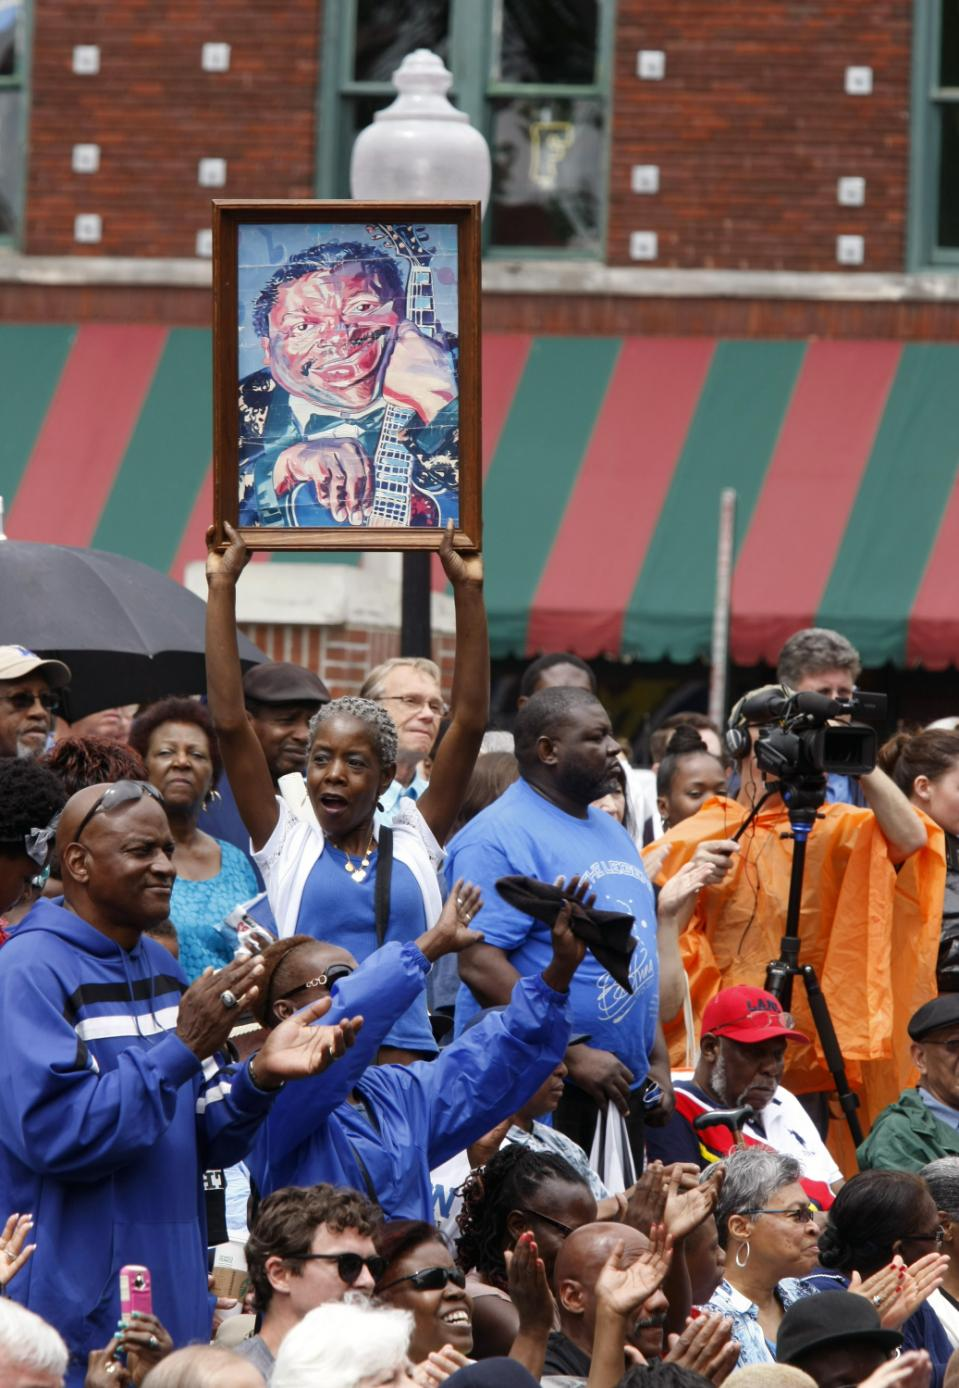 A tribute for blues musician B.B. King is held in W.C. Handy Park Wednesday, May 27, 2015, in Memphis, Tenn